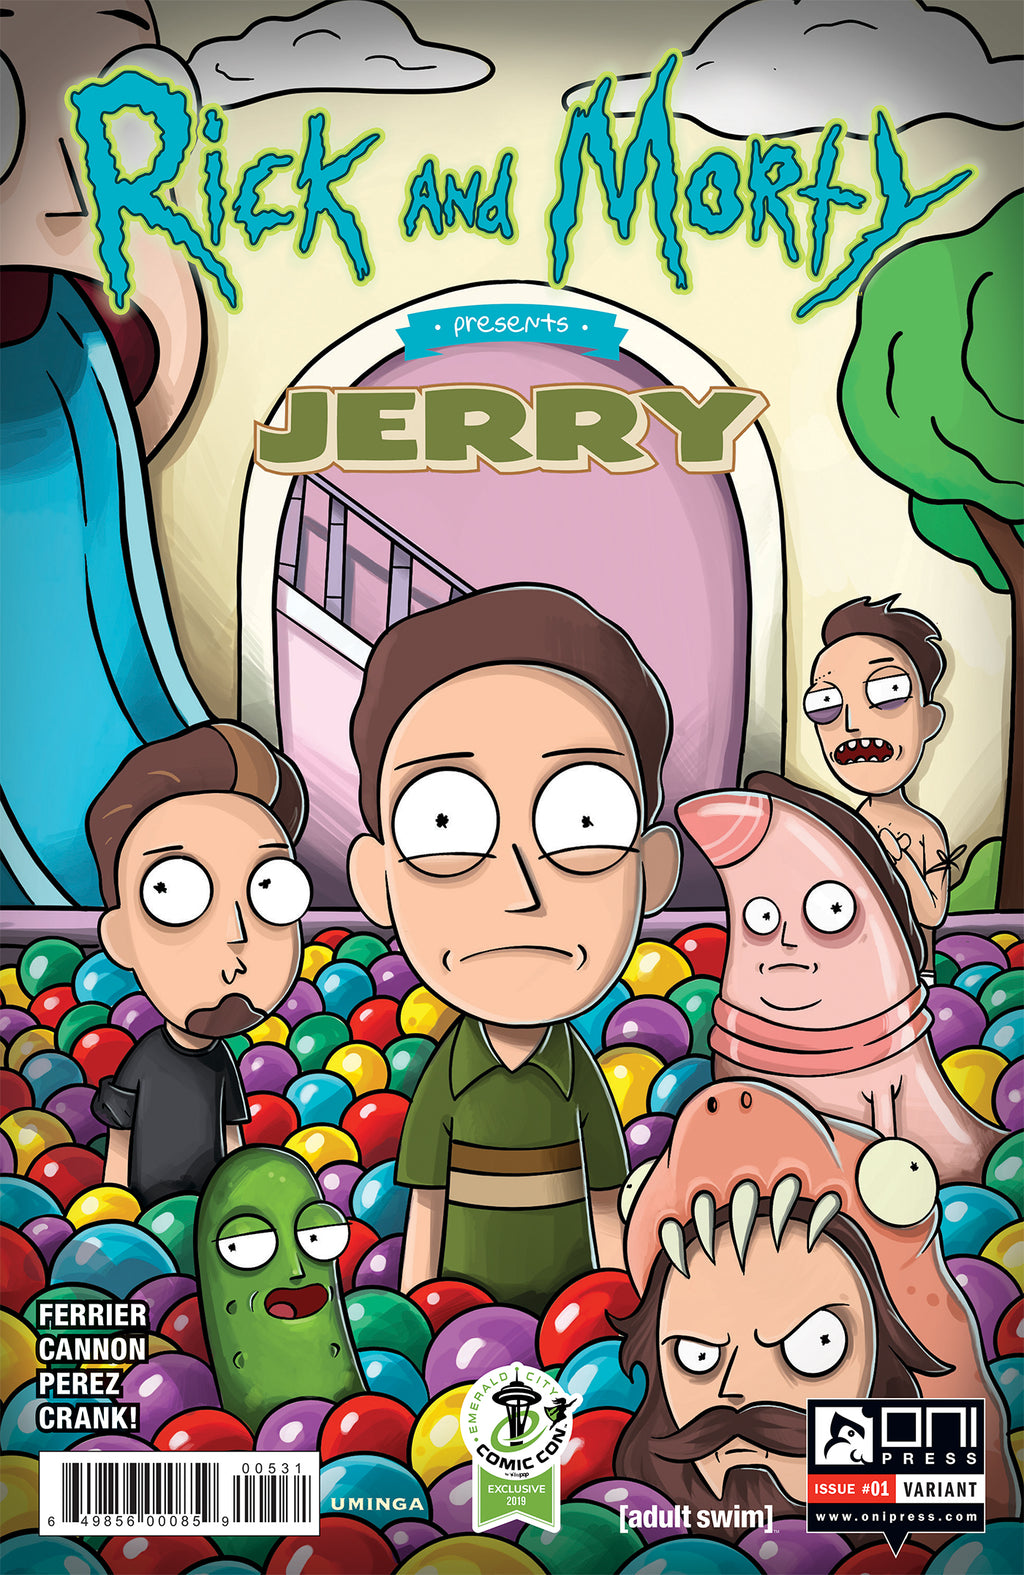 Rick and Morty Presents: Jerry #1 ECCC variant